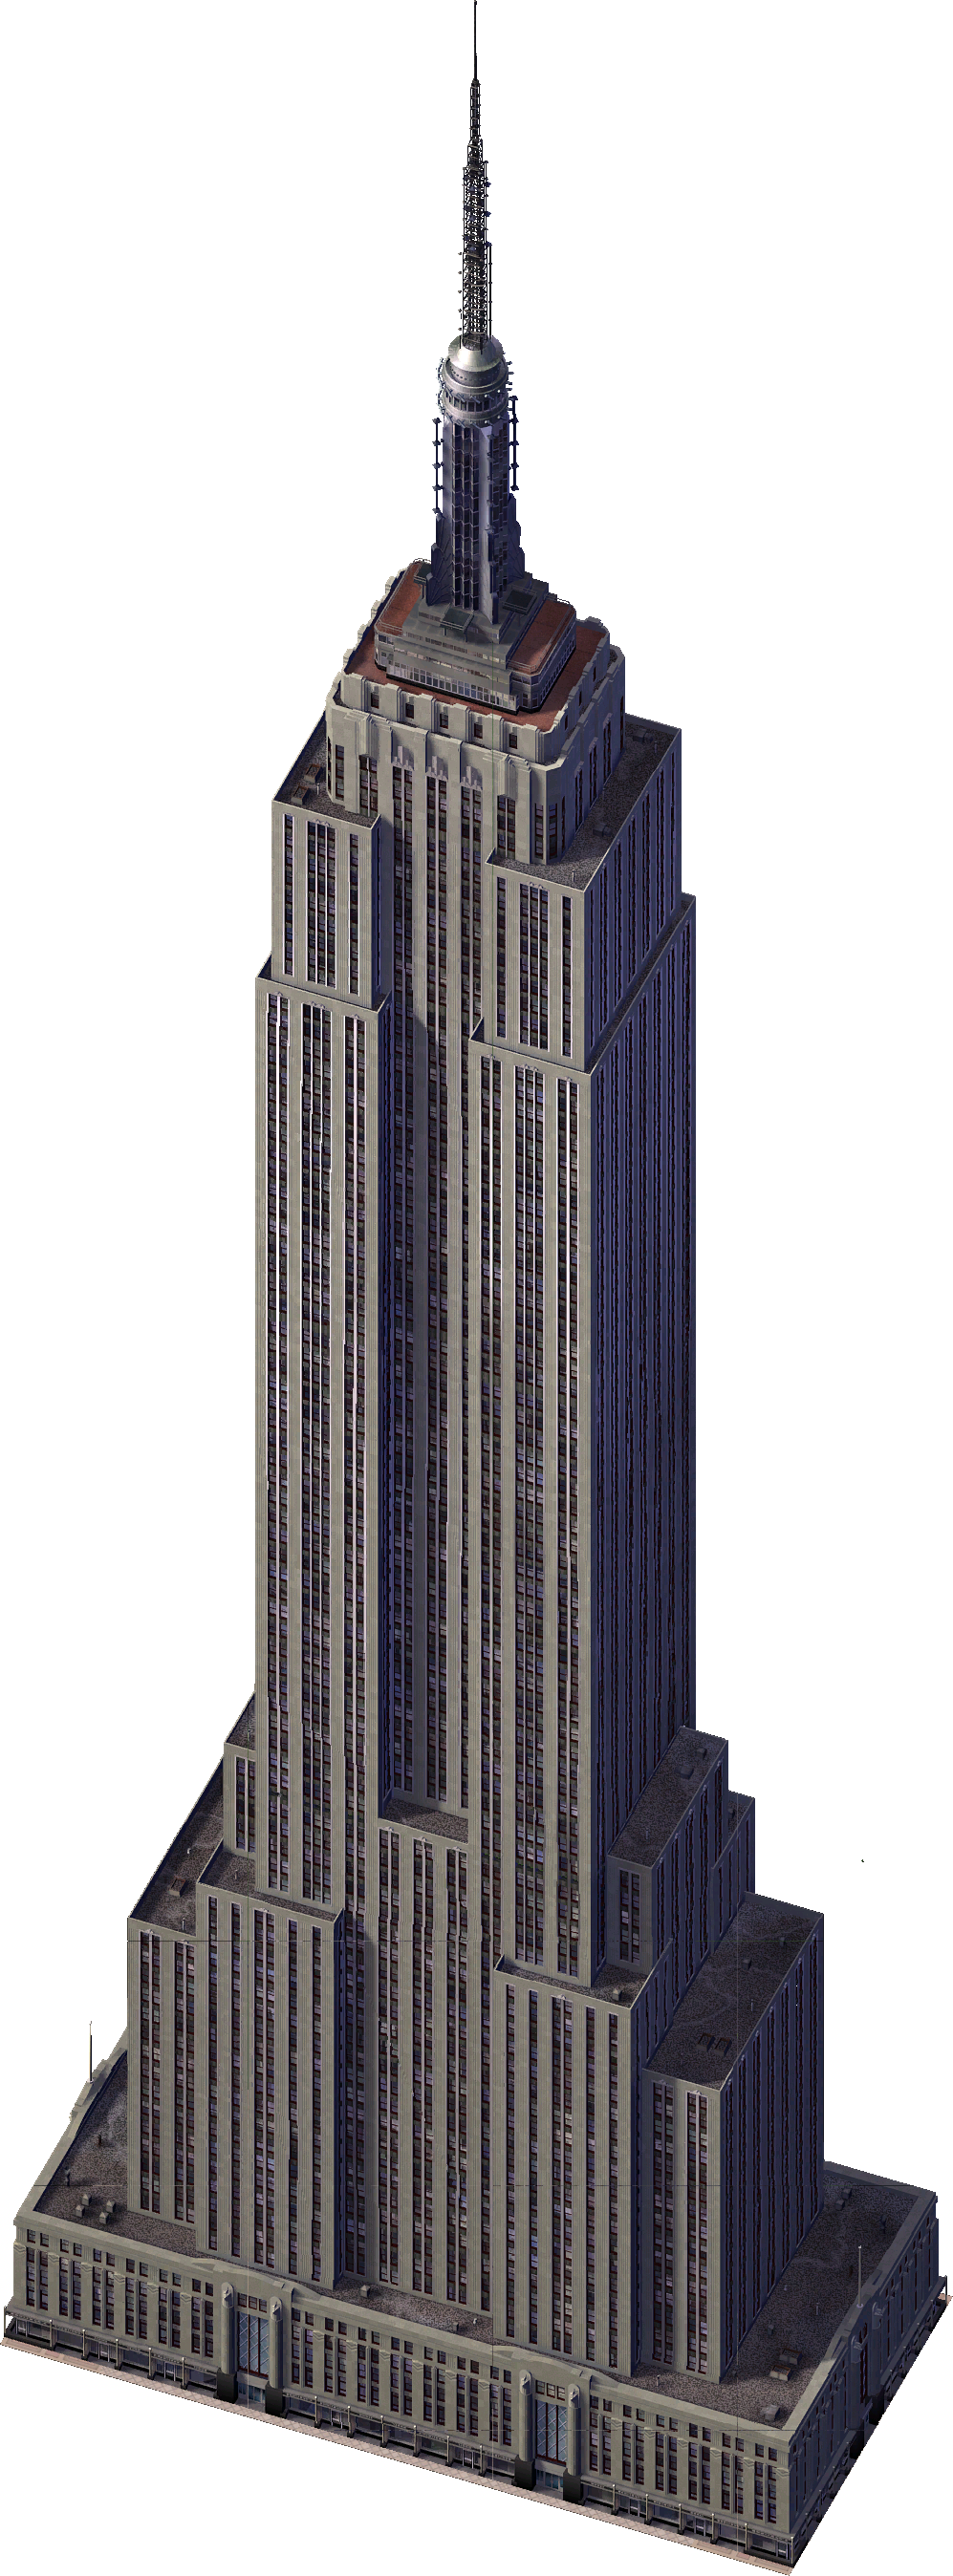 image empire state building simcity encyclopaedia #11551